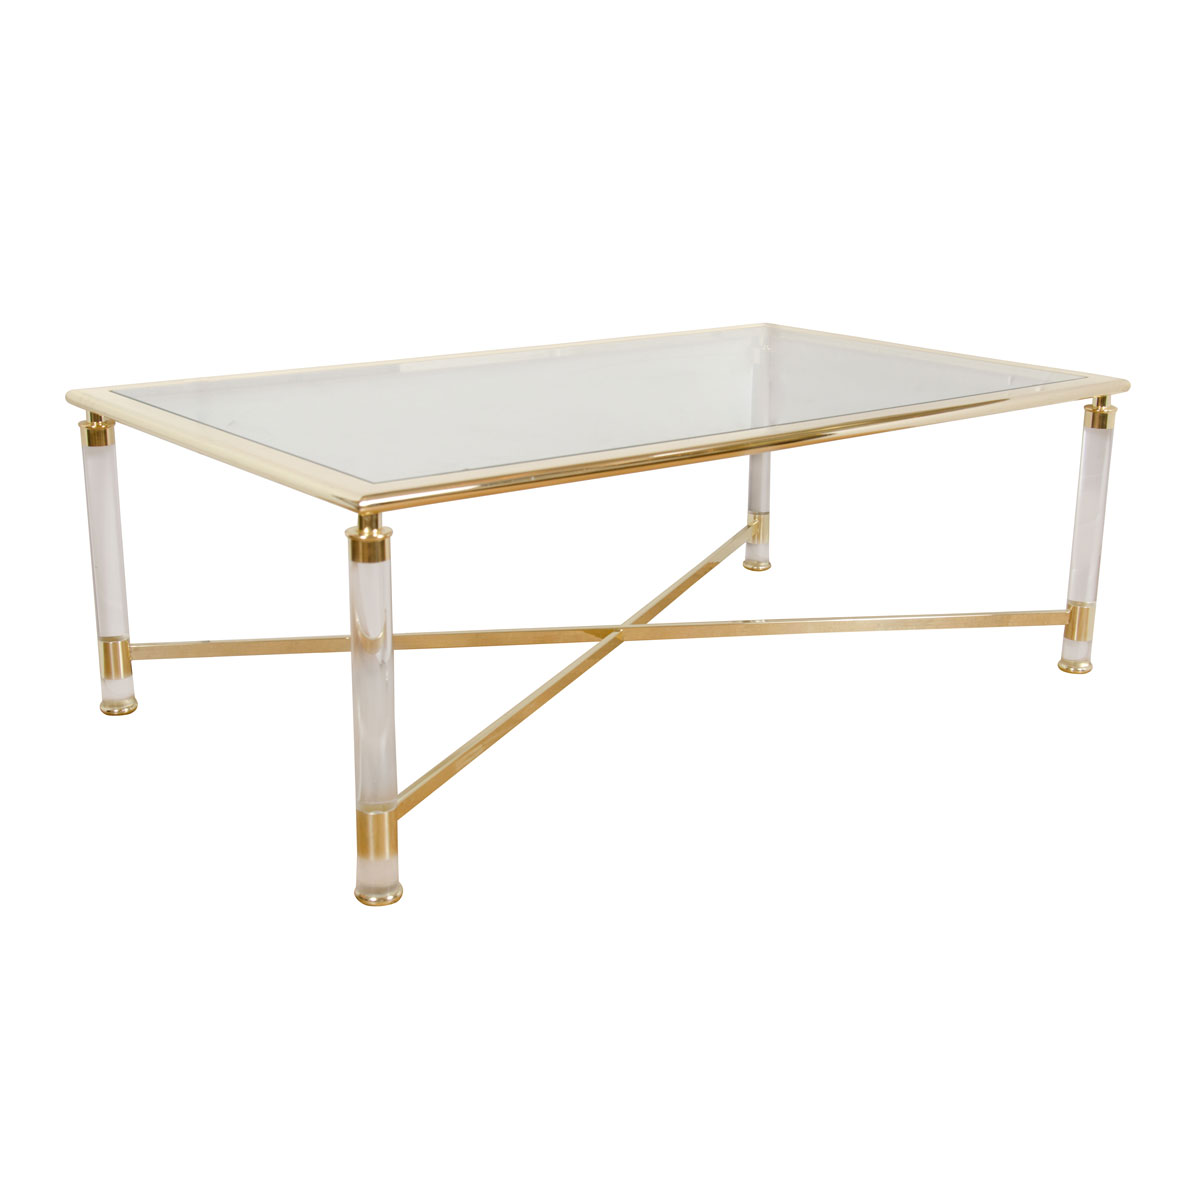 Rectangular brass and glass coffee table coffee tables for Rectangular coffee table with glass top